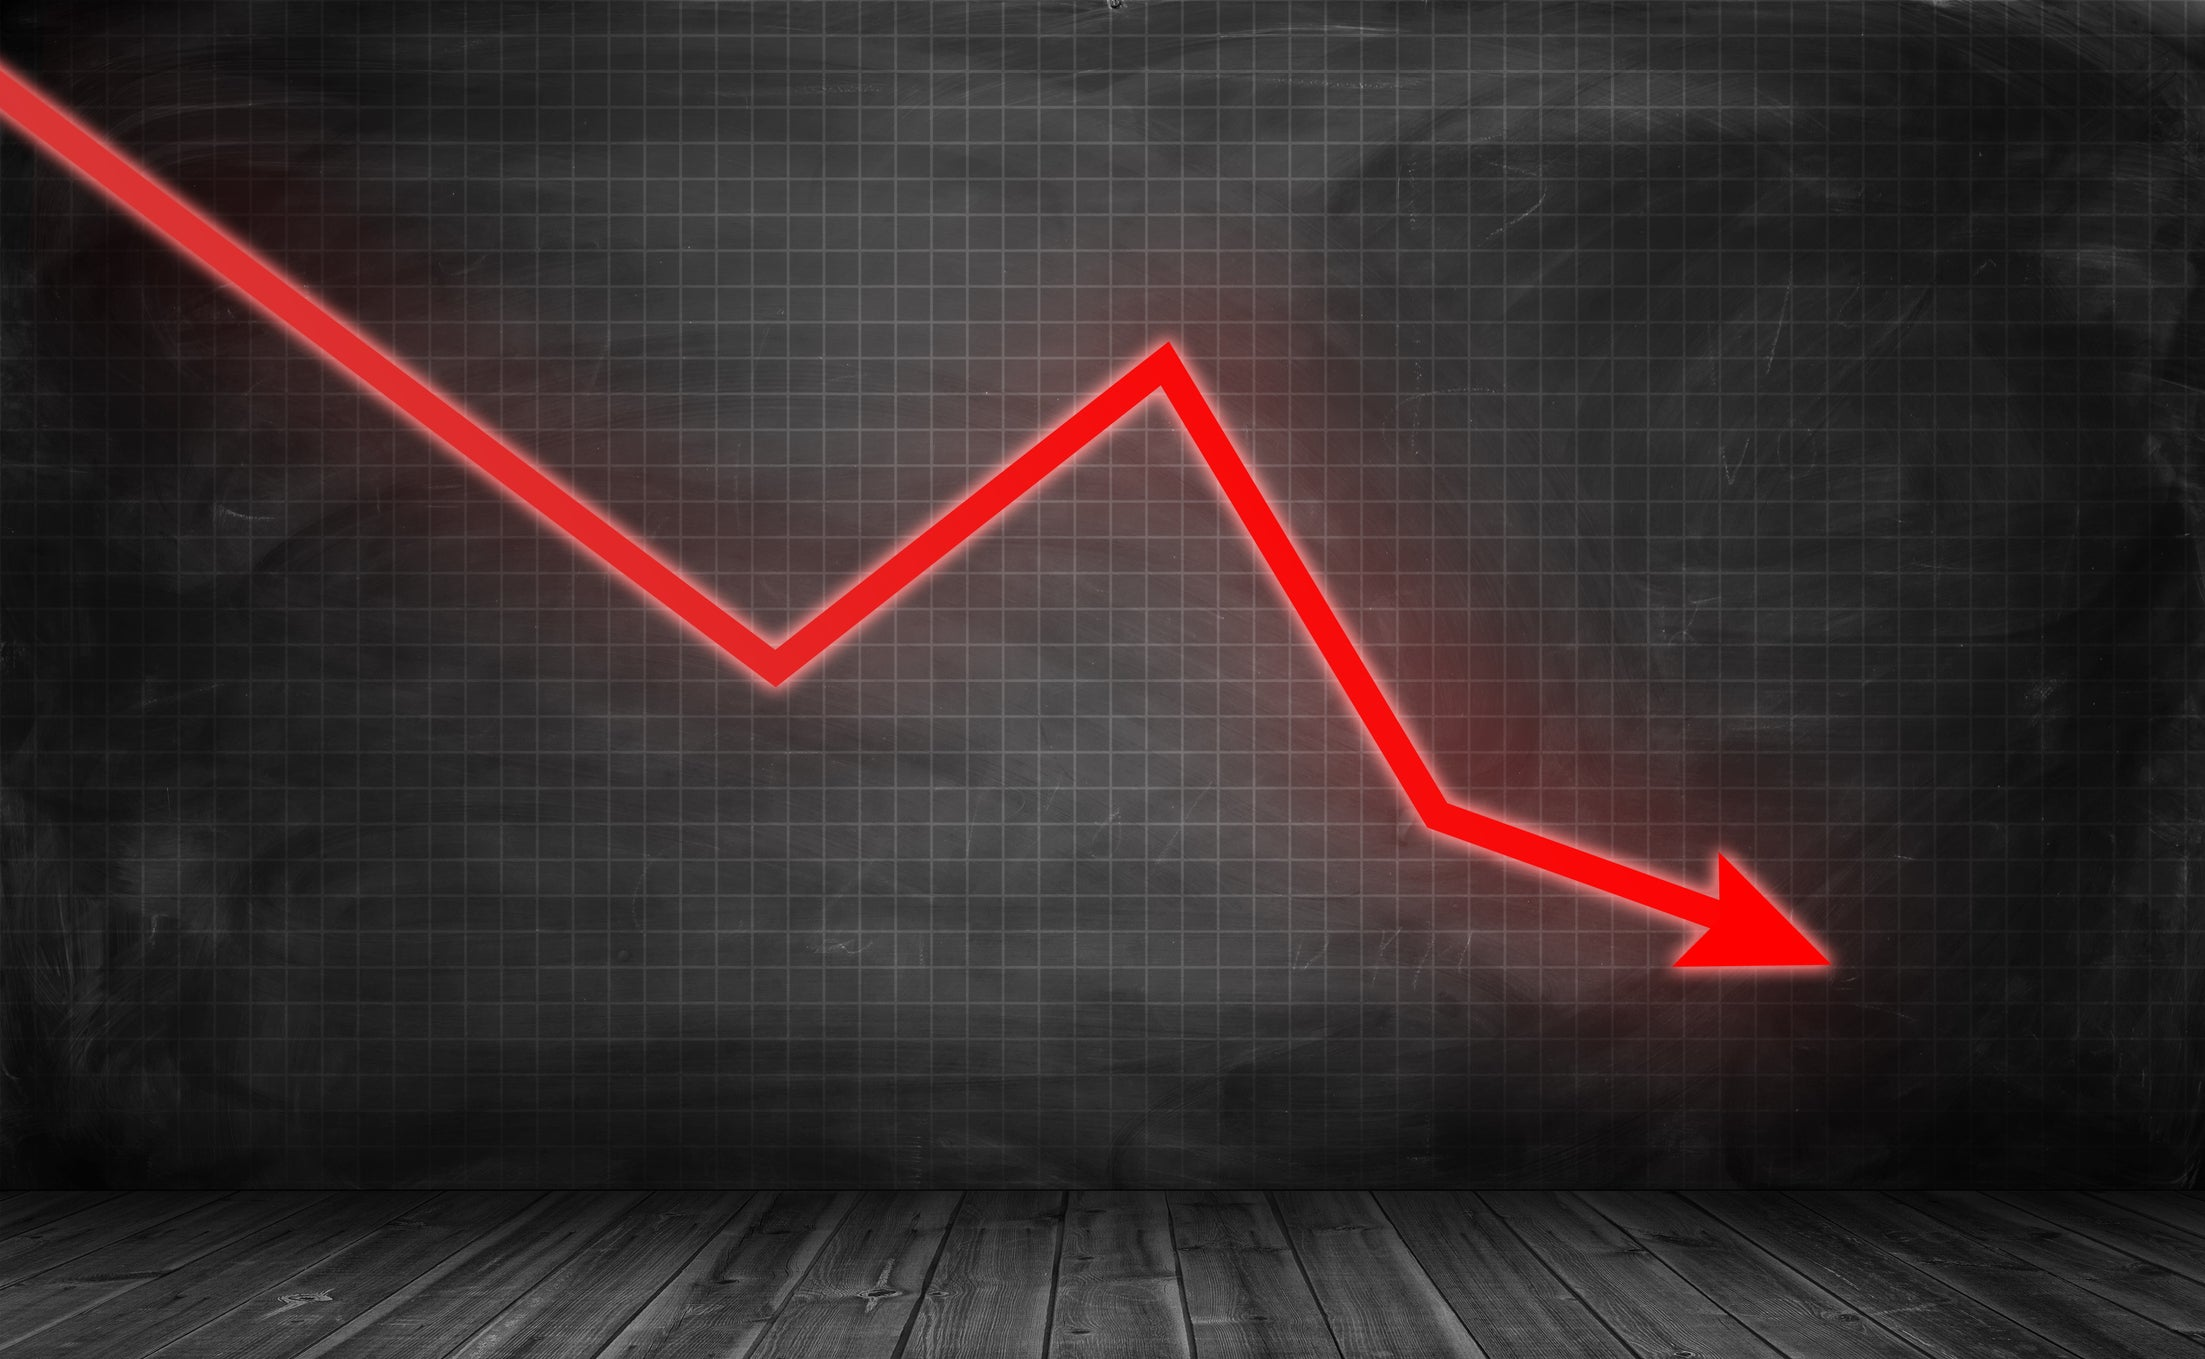 Crypto Crash: Bitcoin, Ethereum, and Dogecoin Are Plunging ...